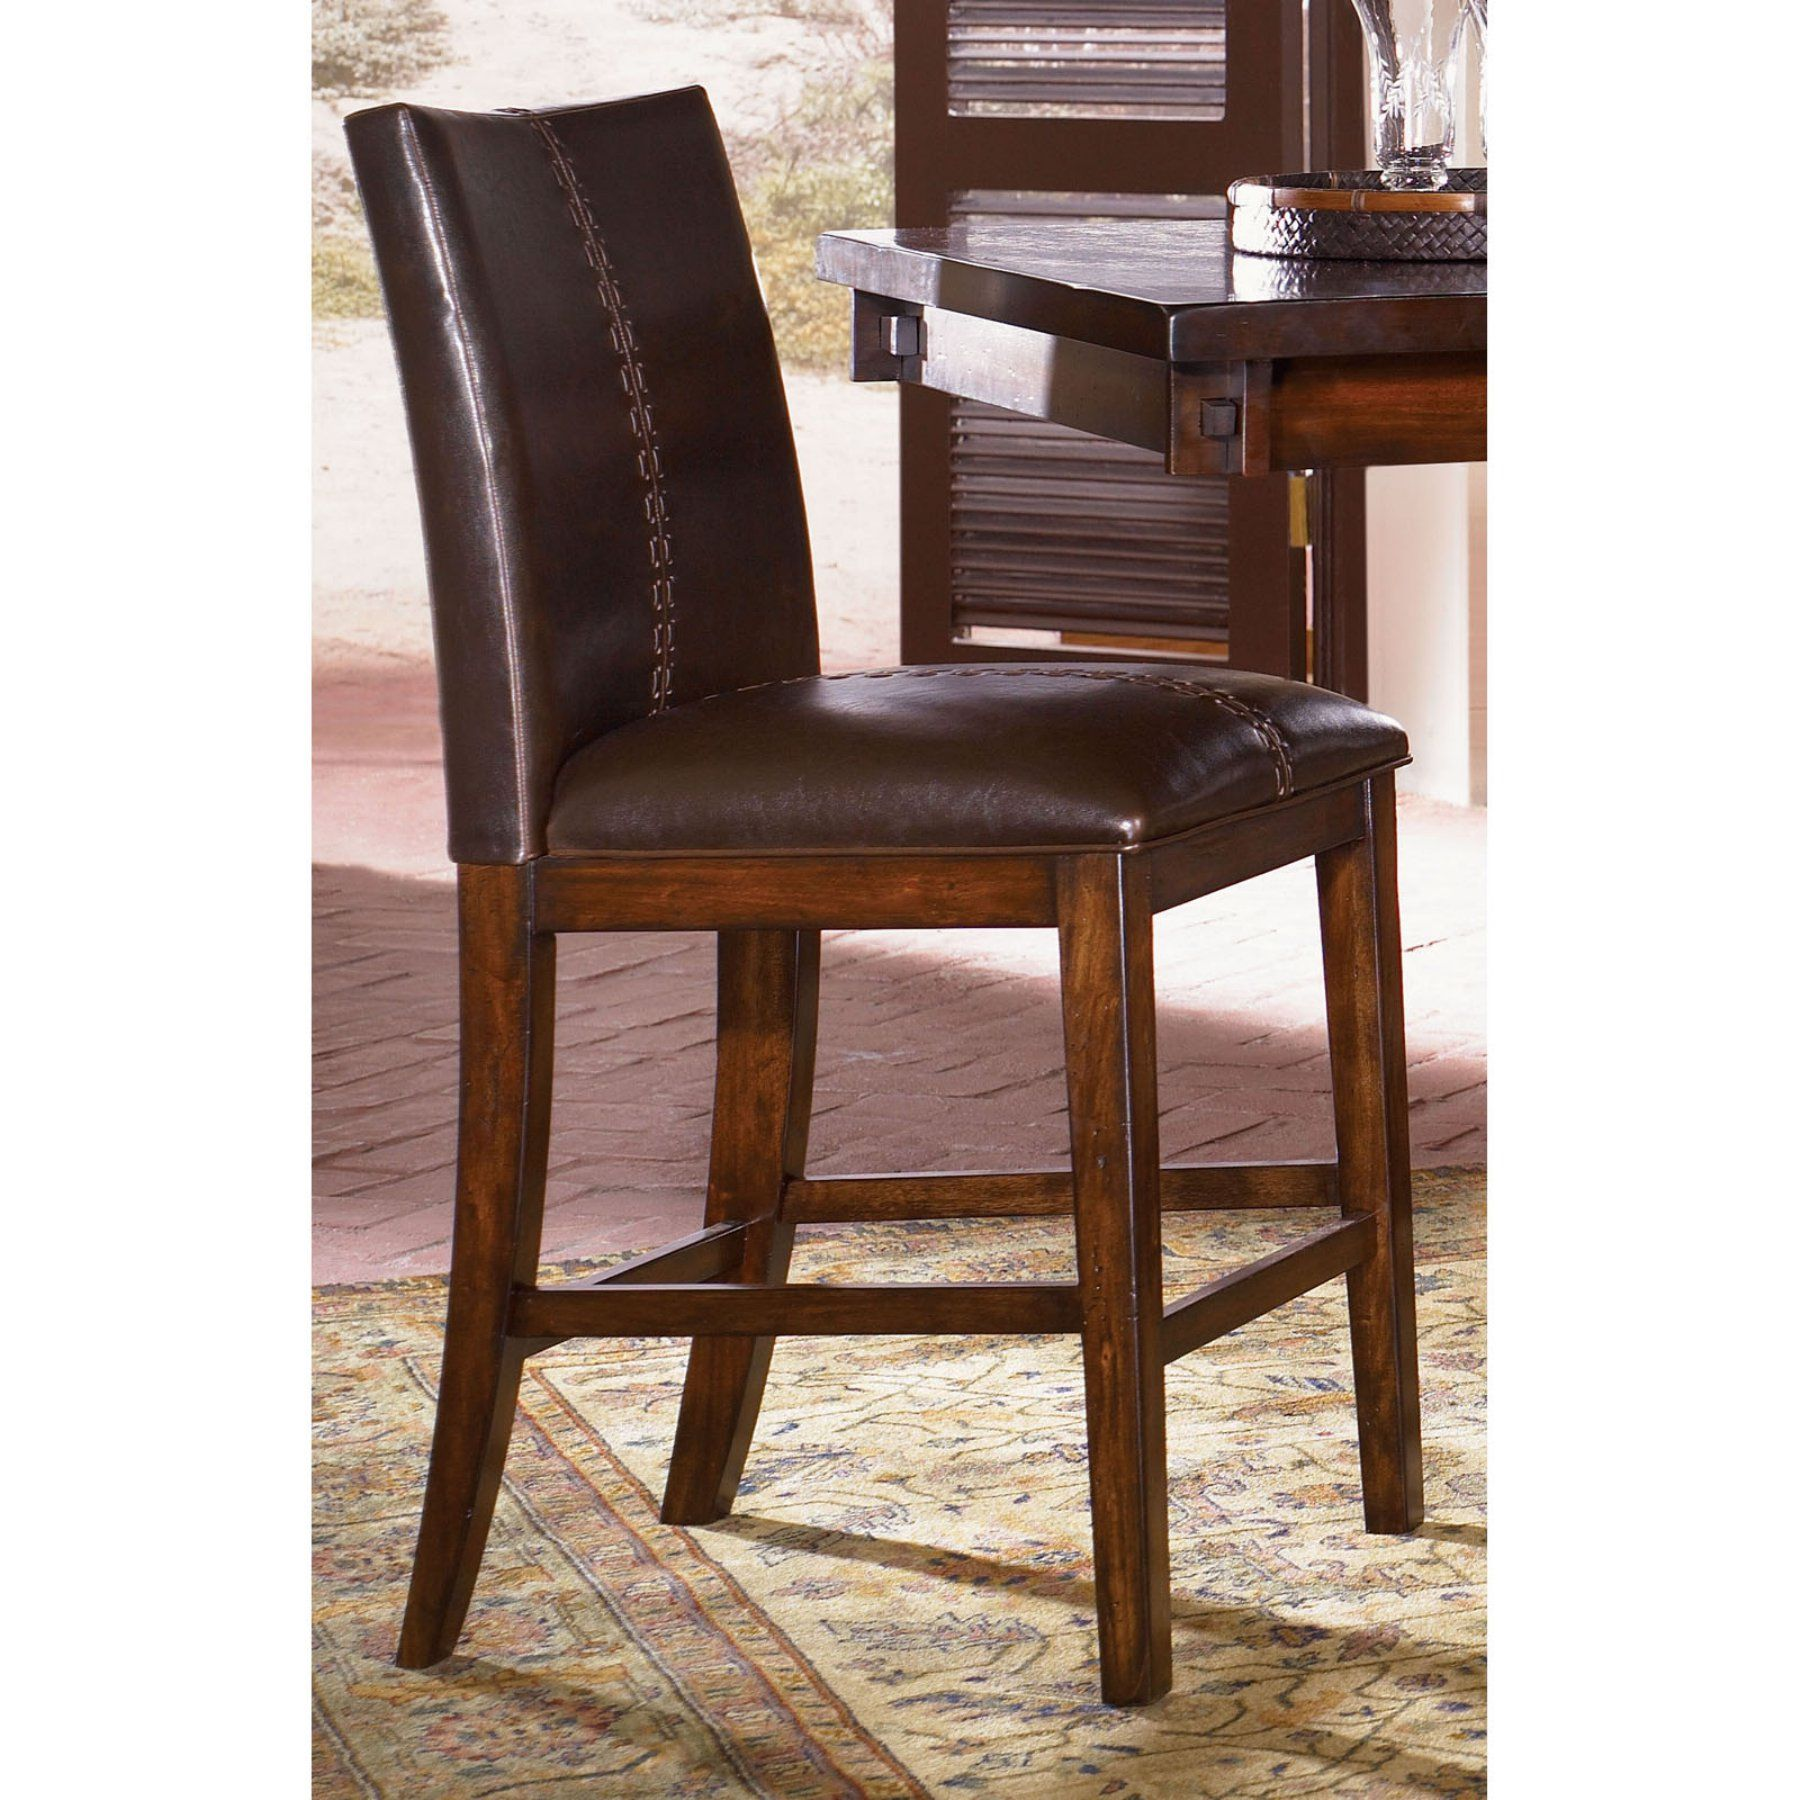 A-America Mesa Rustica Parson Counter Chairs - Set of 2 - AAME216